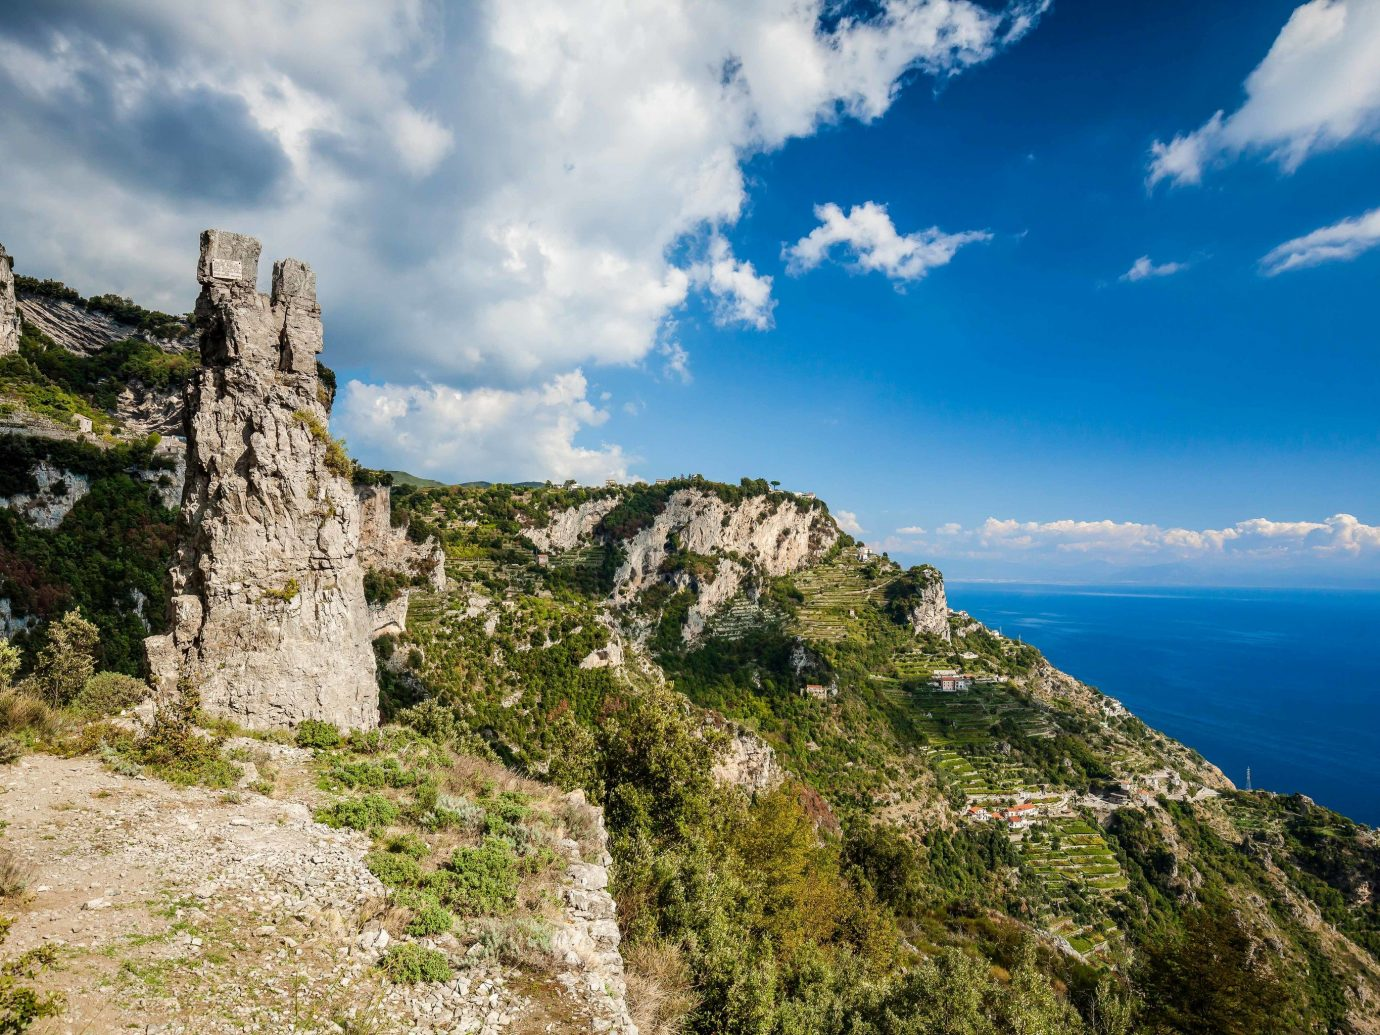 europe Outdoors + Adventure Trip Ideas sky cloud promontory highland cliff mount scenery Coast mountain terrain rock escarpment klippe tourism cape Sea tree national trust for places of historic interest or natural beauty meteorological phenomenon landscape building hill